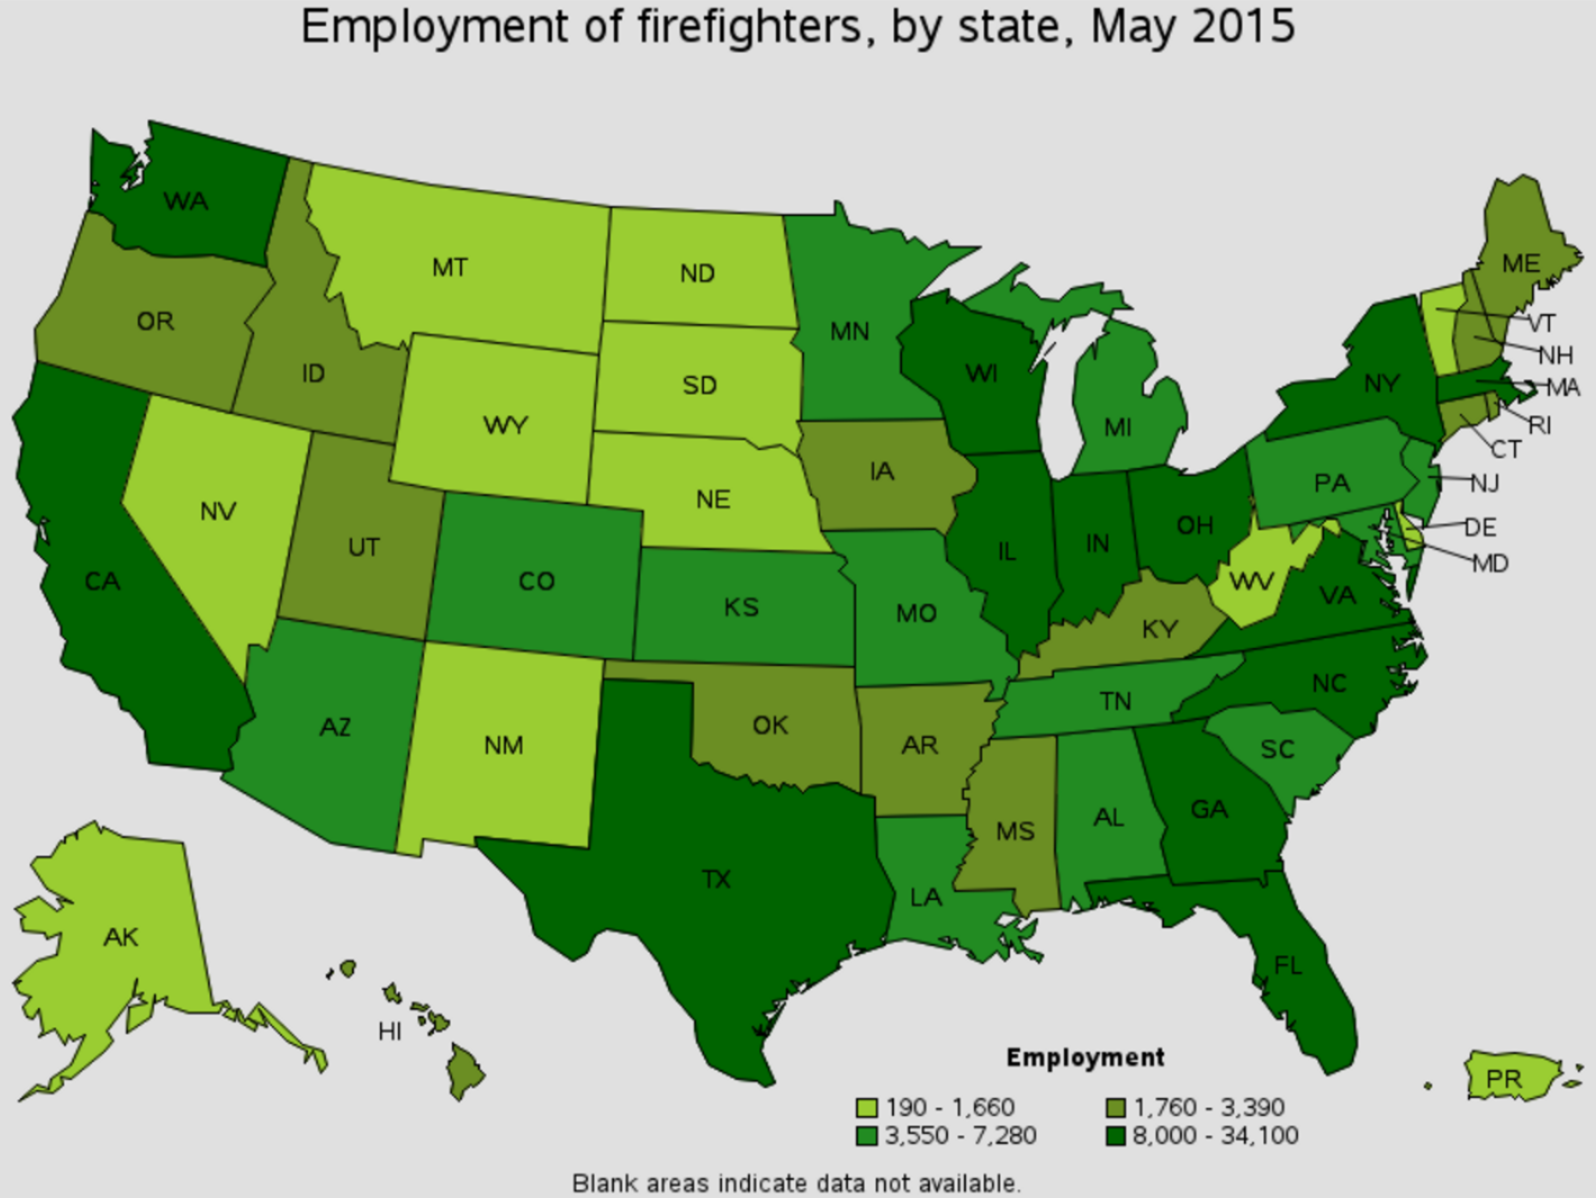 firefighter job outlook by state Wonder Lake Illinois